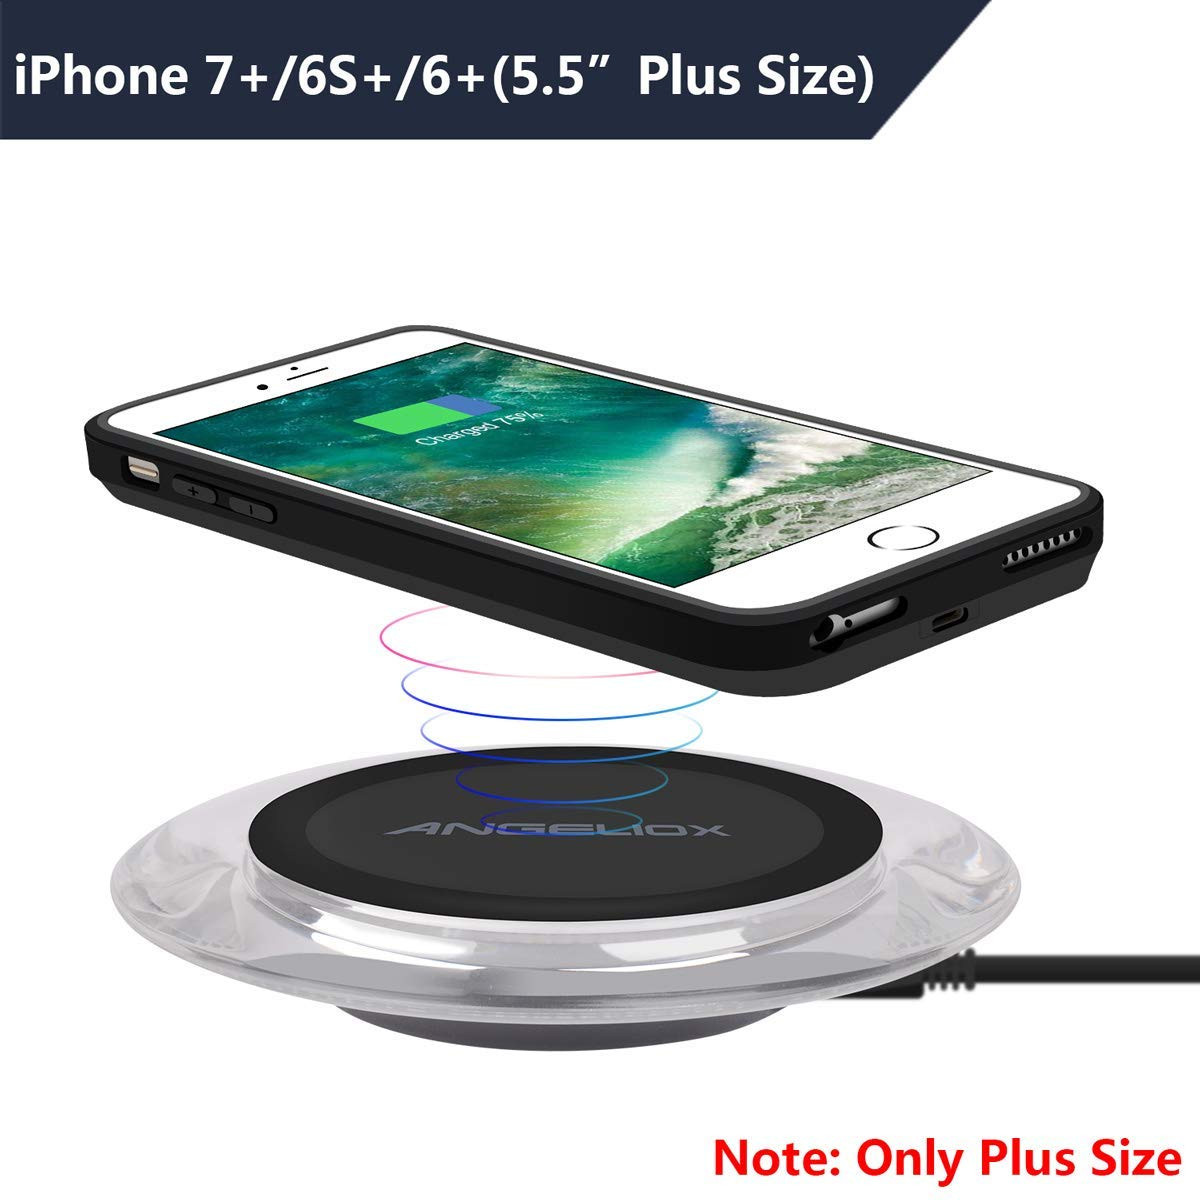 on sale b70e5 332dc ANGELIOX Wireless Charger with Qi Wireless Charging Receiver Case for  iPhone 7 Plus/6S Plus/6 Plus(Plus Size Only),Qi Wireless Charging Pad  Compatible ...